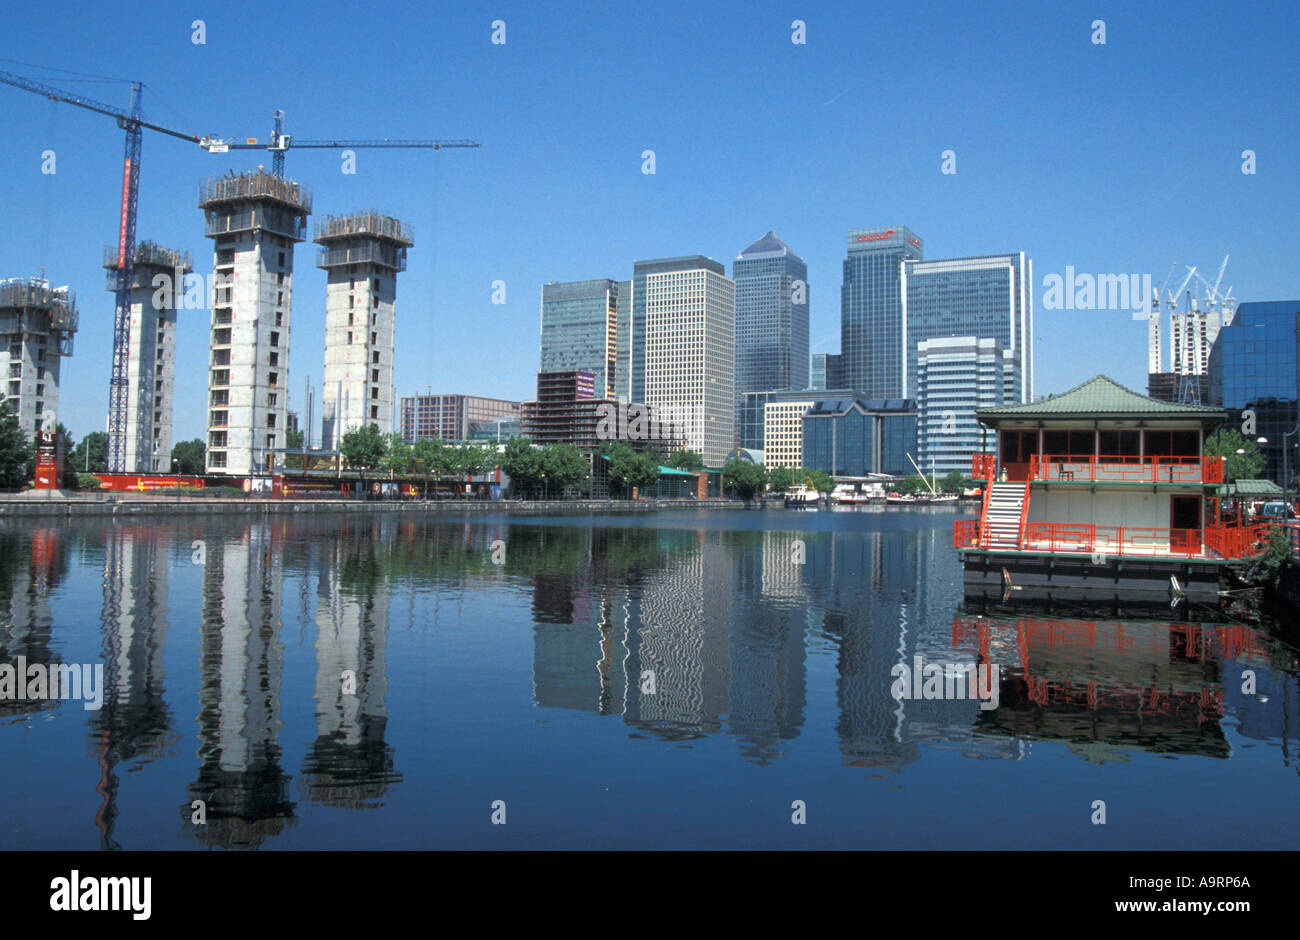 Milharbour construction and Canary Wharf - Stock Image